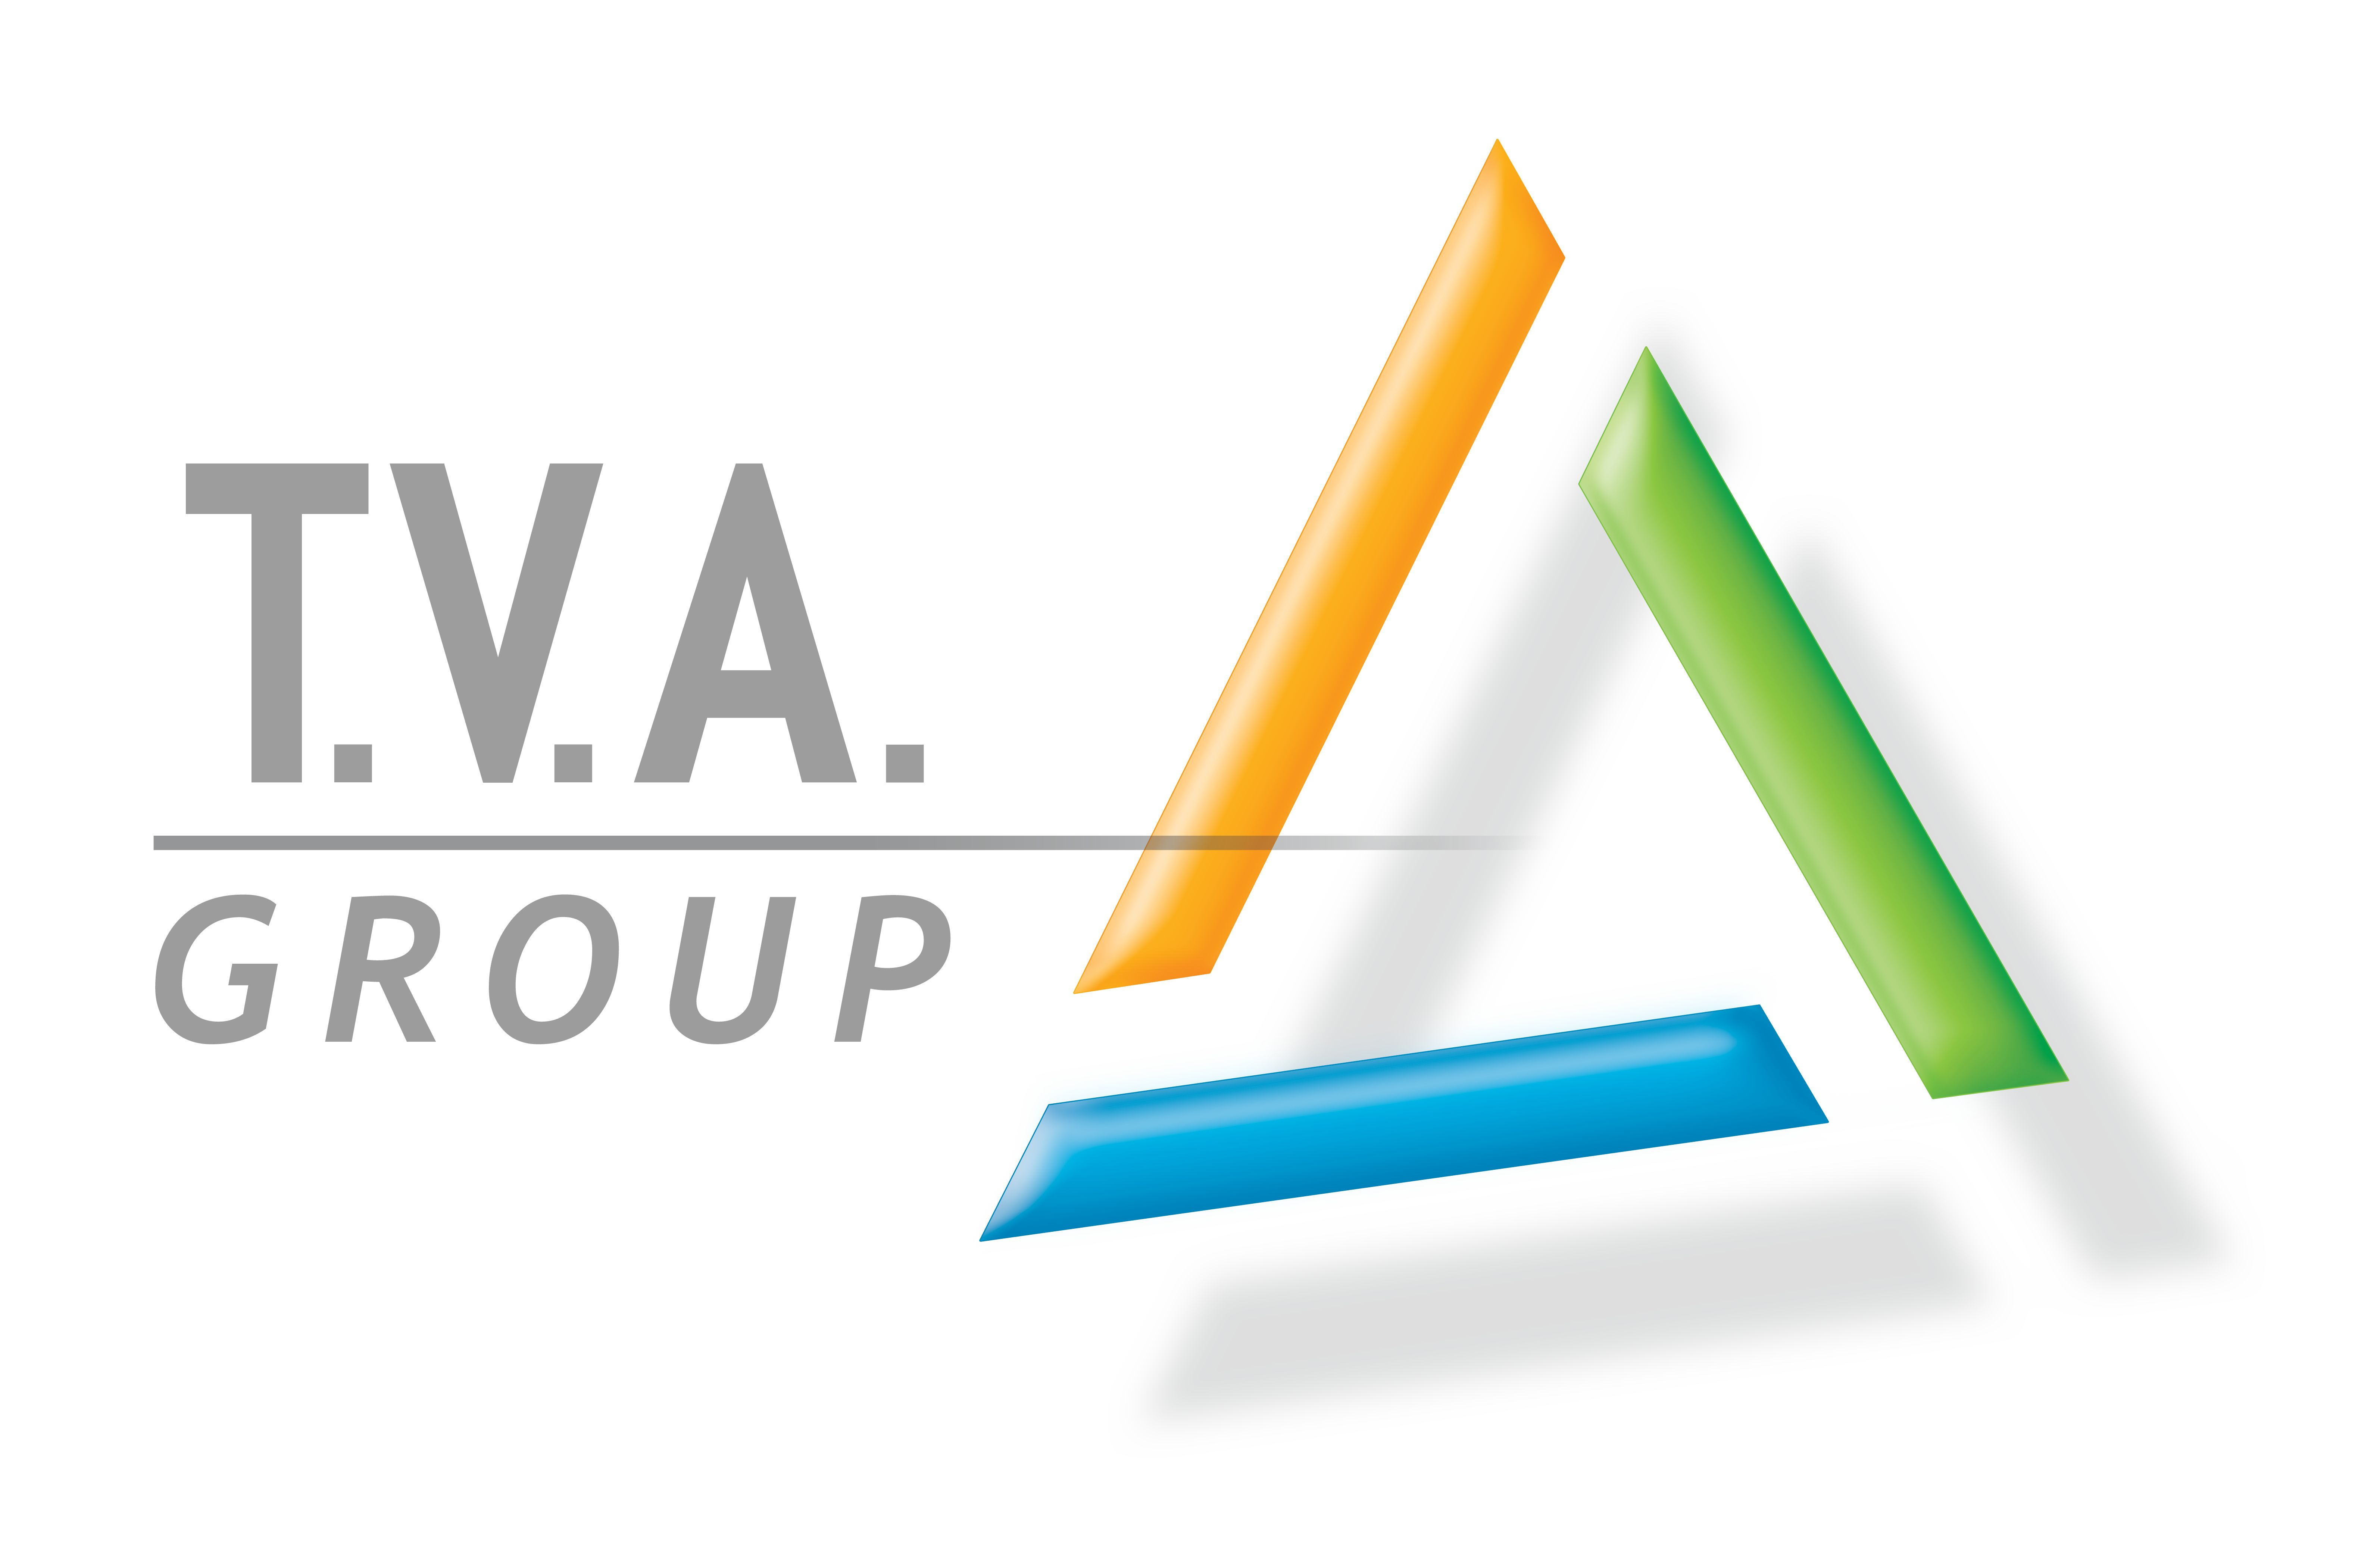 TVA Group Quad Max